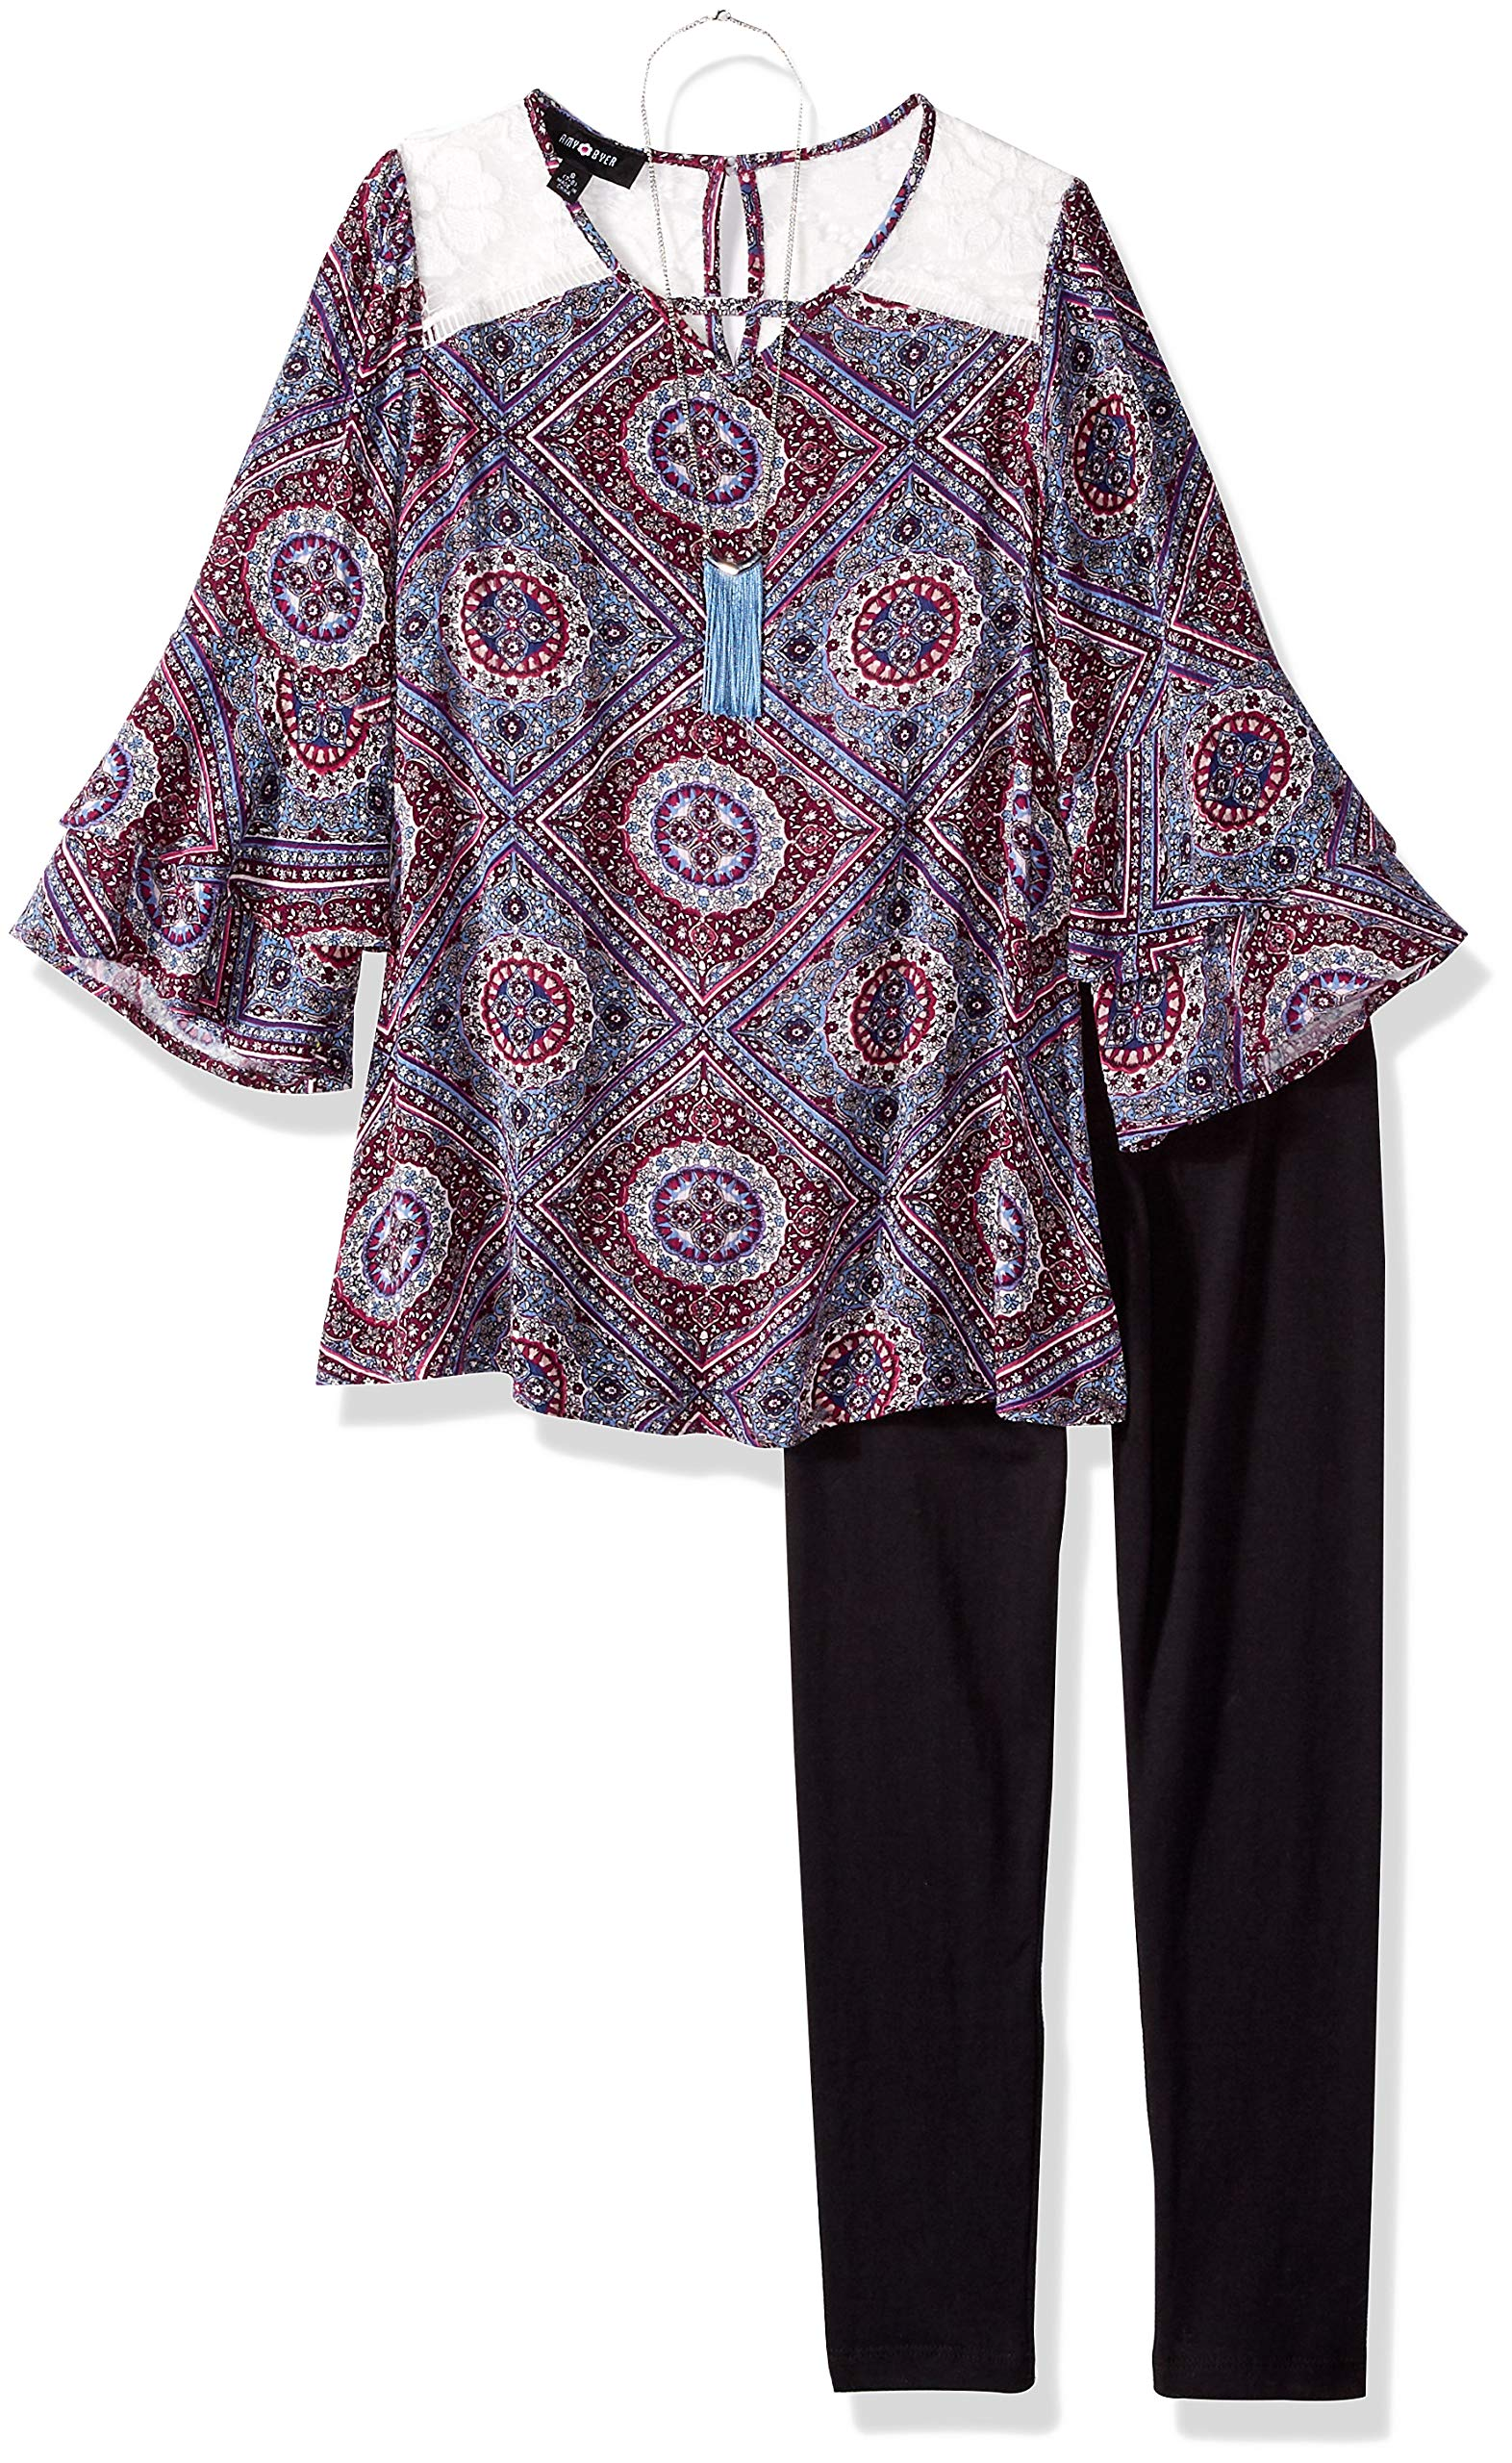 Amy Byer Big Girls' 3/4 Sleeve Top and Legging Outfit Set, Chambray/Plum Diamond Tile, L